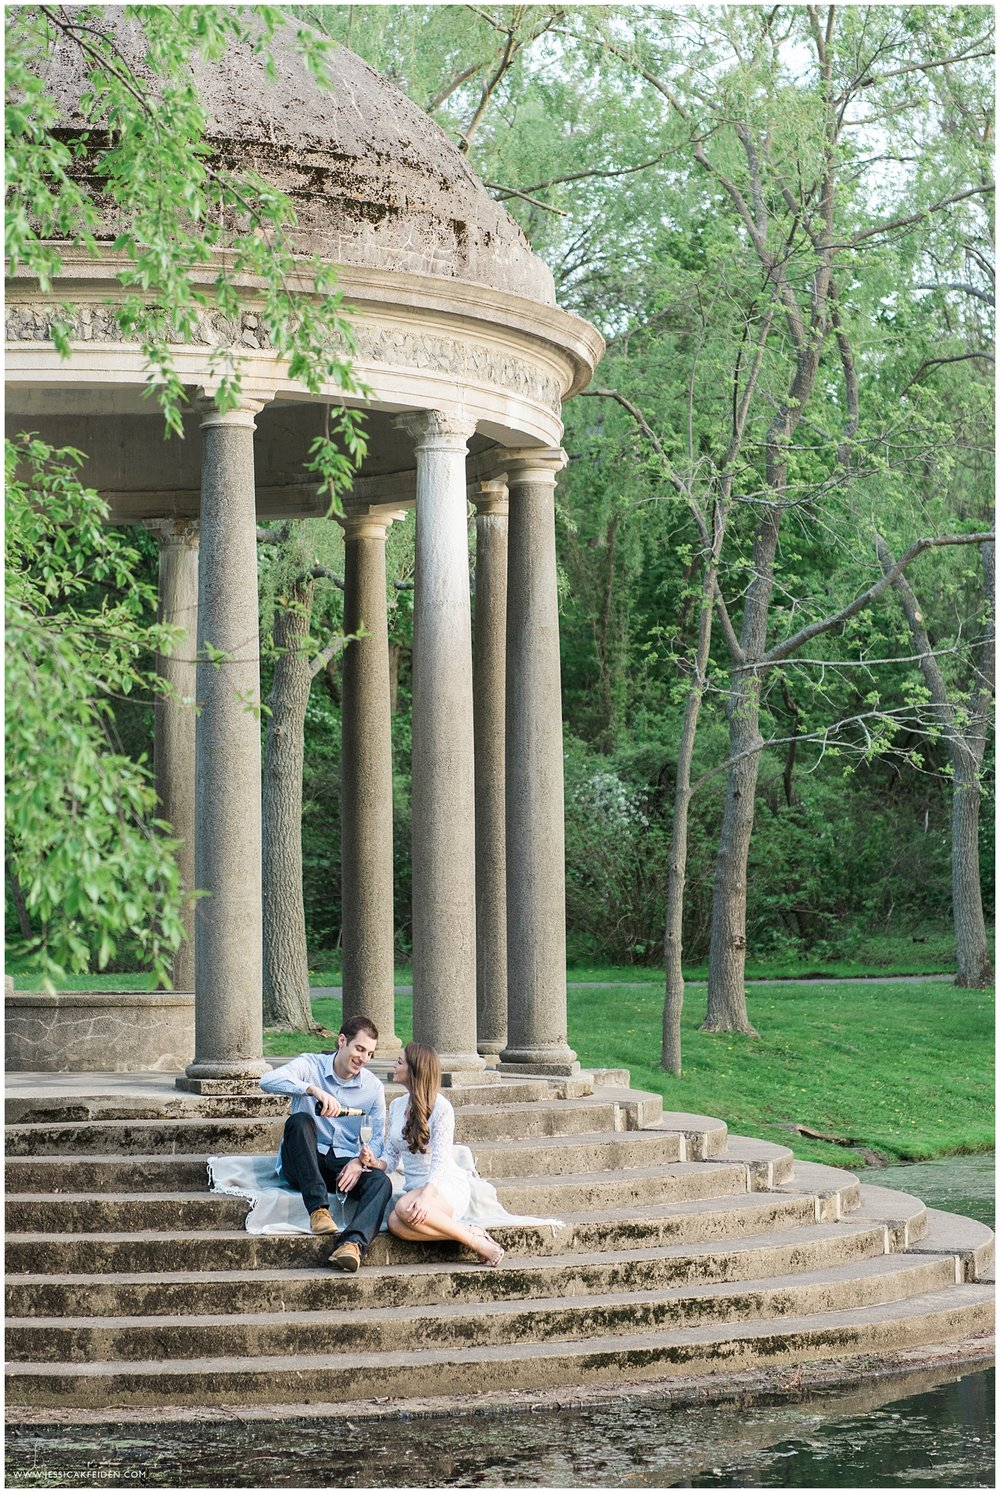 Jessica K Feiden Photography_Larz Anderson Park Engagement Session Photographer_0019.jpg